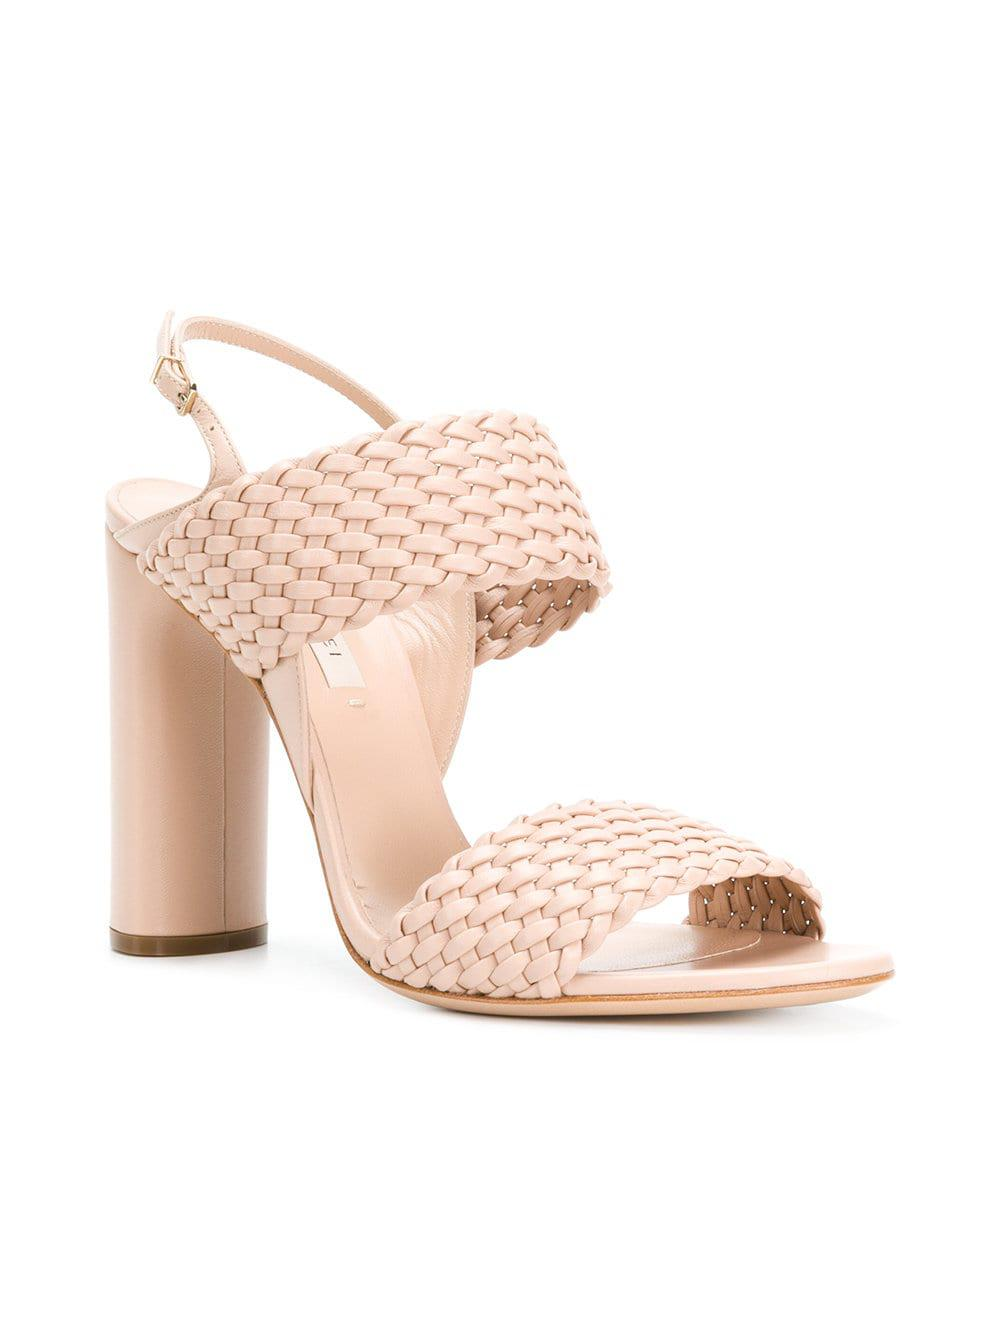 cc8a8ab0d9e8 Lyst - Casadei Woven Strap Sandals in Pink - Save 2%